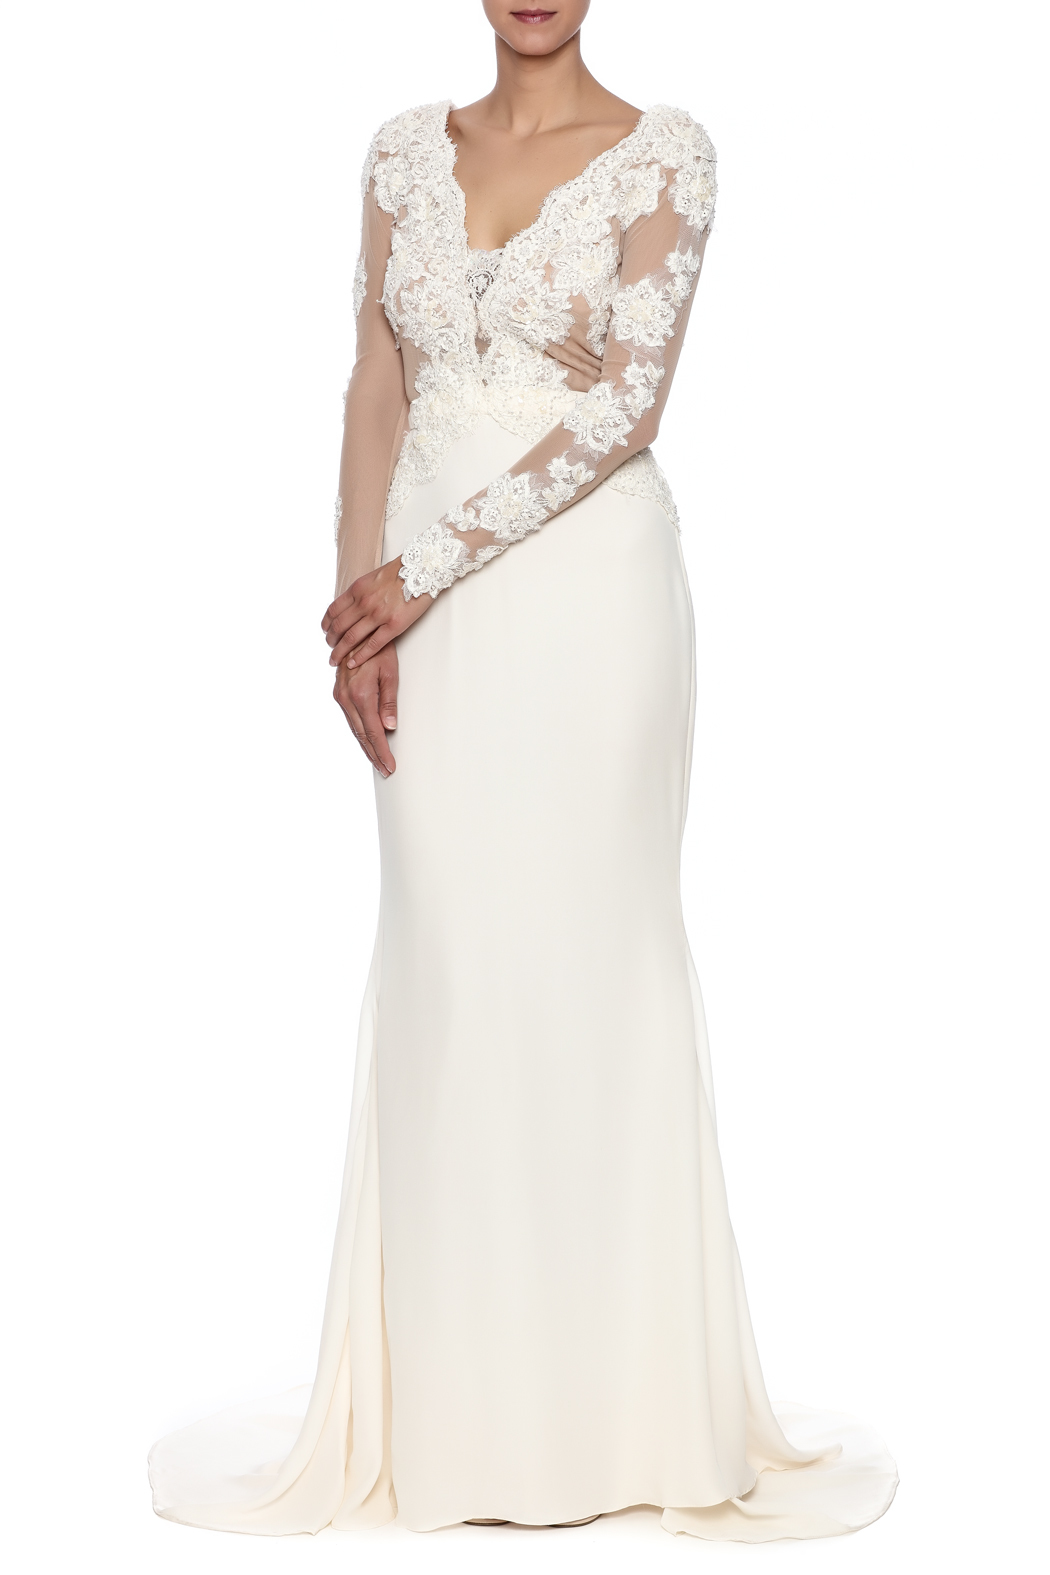 Stephanie D Couture Adeline Gown - Main Image